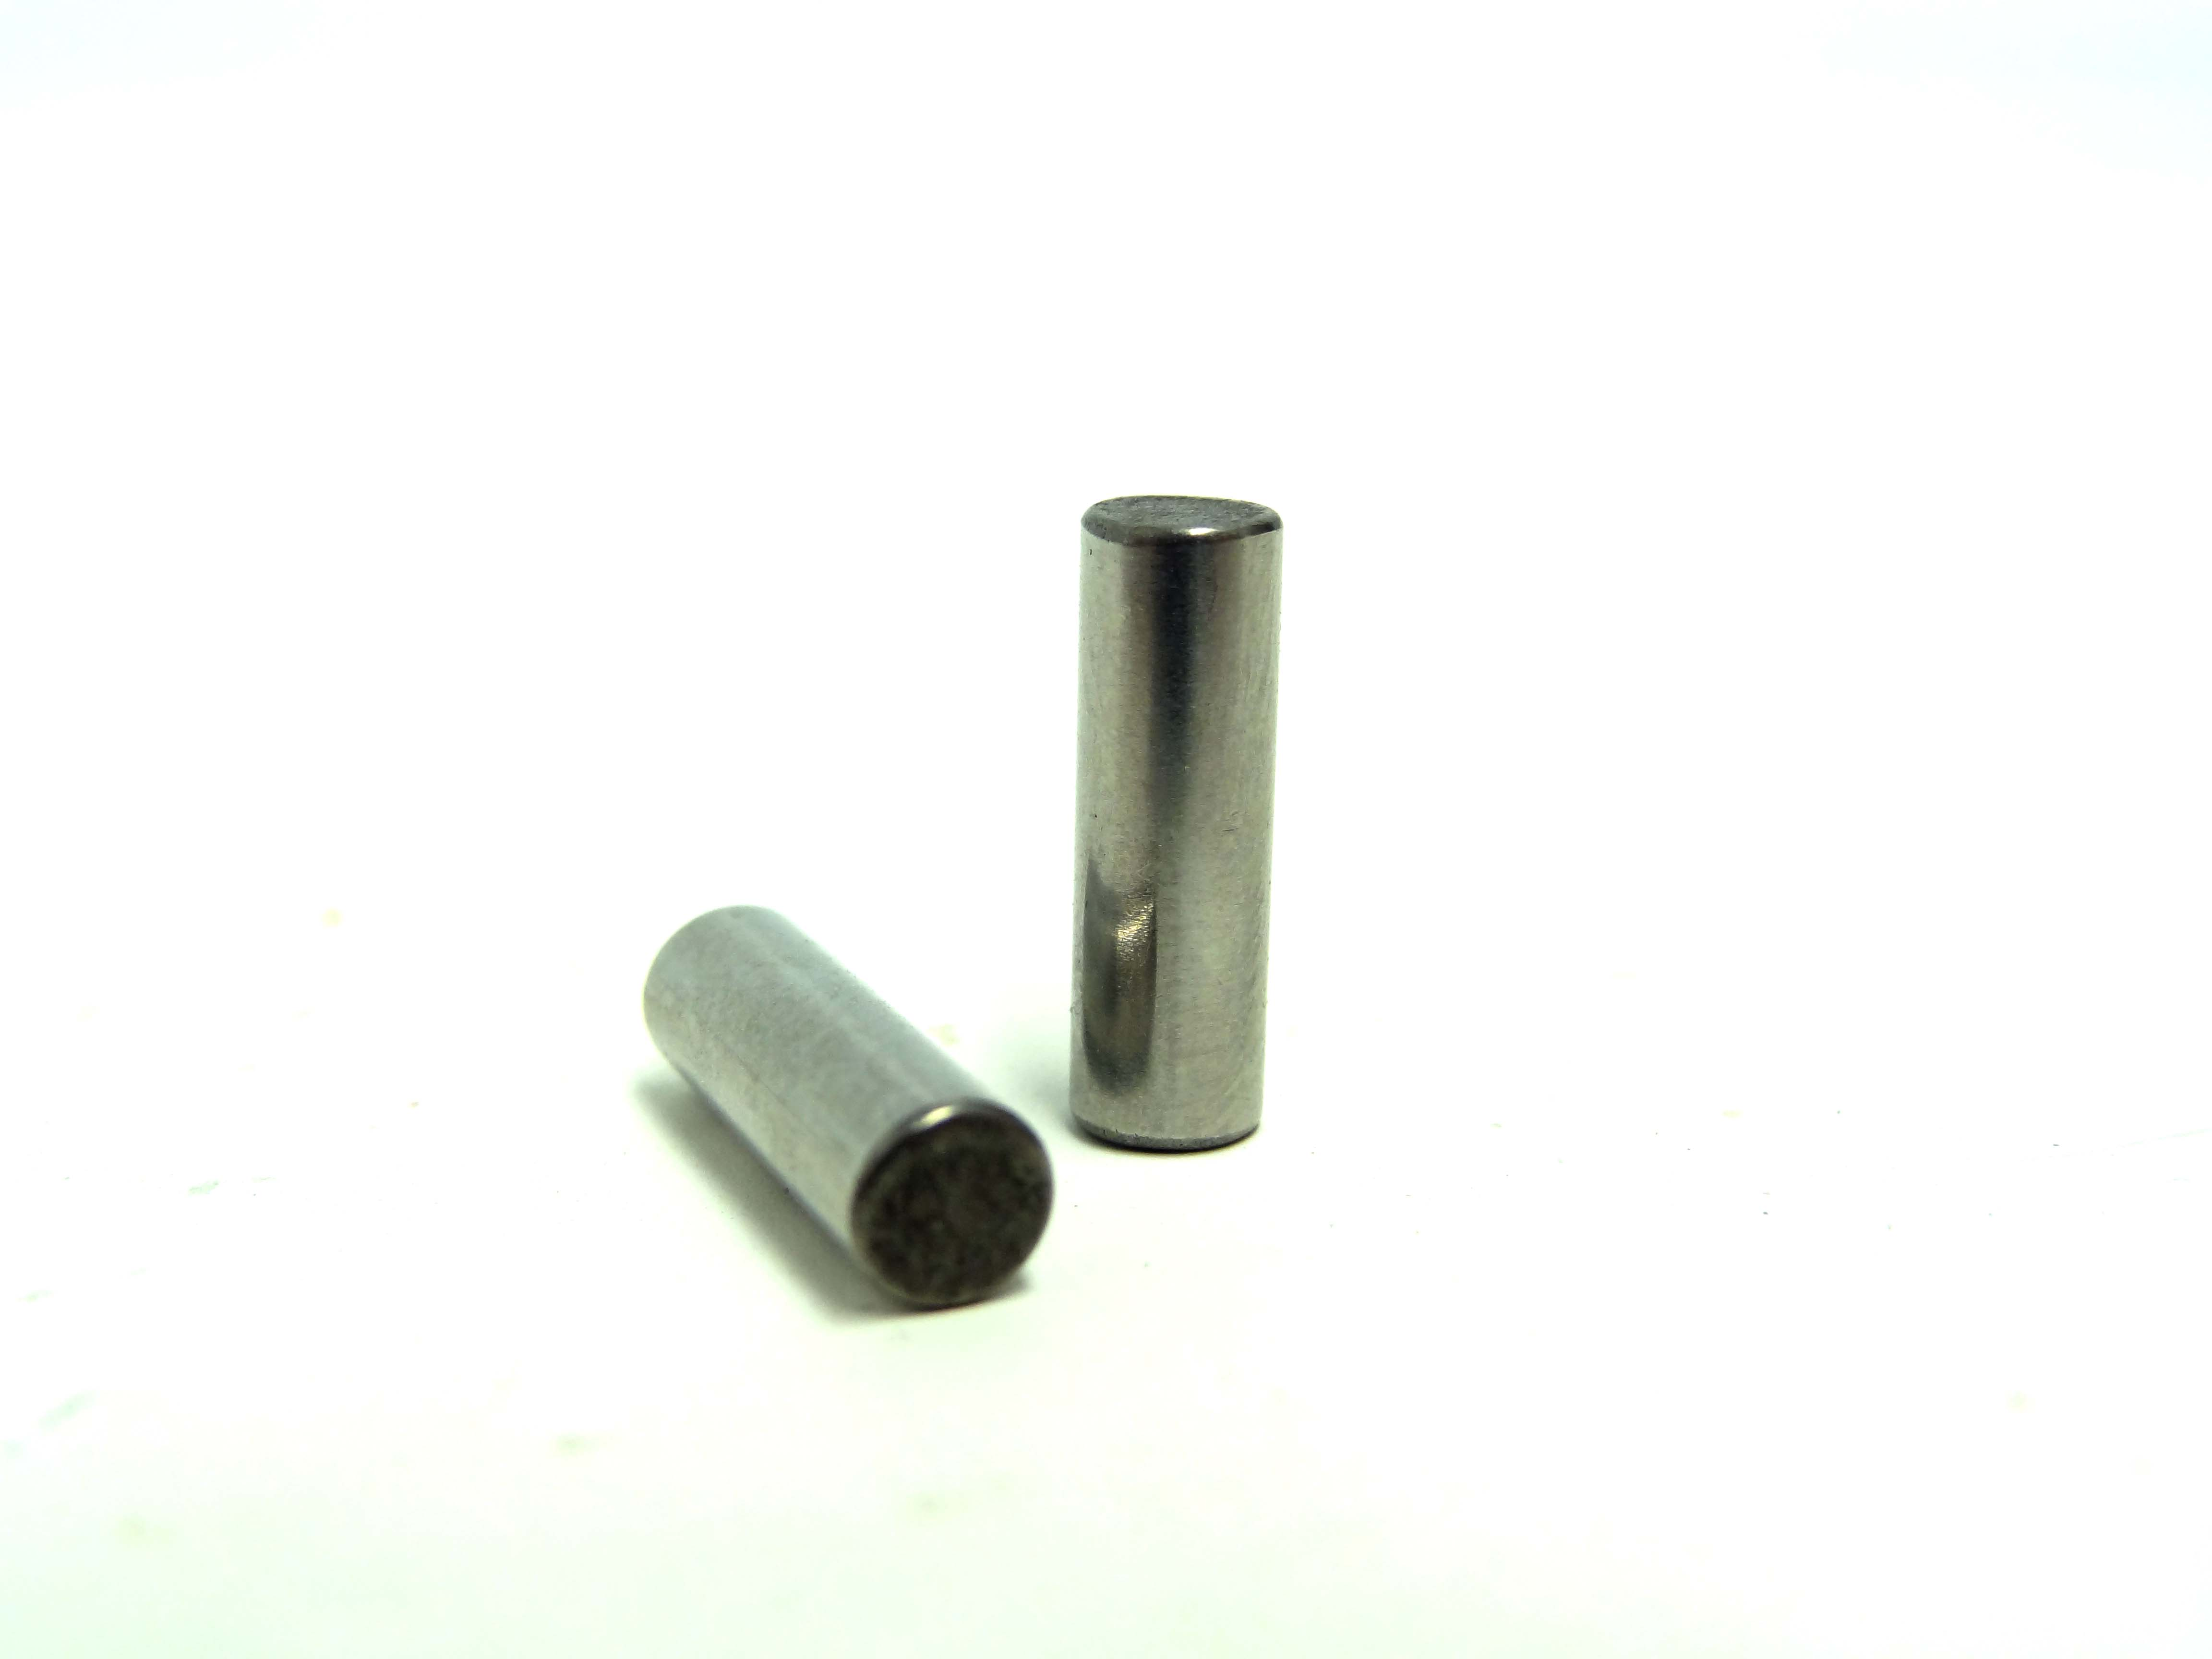 2-Speed Lay Shaft Pins (set of 2)